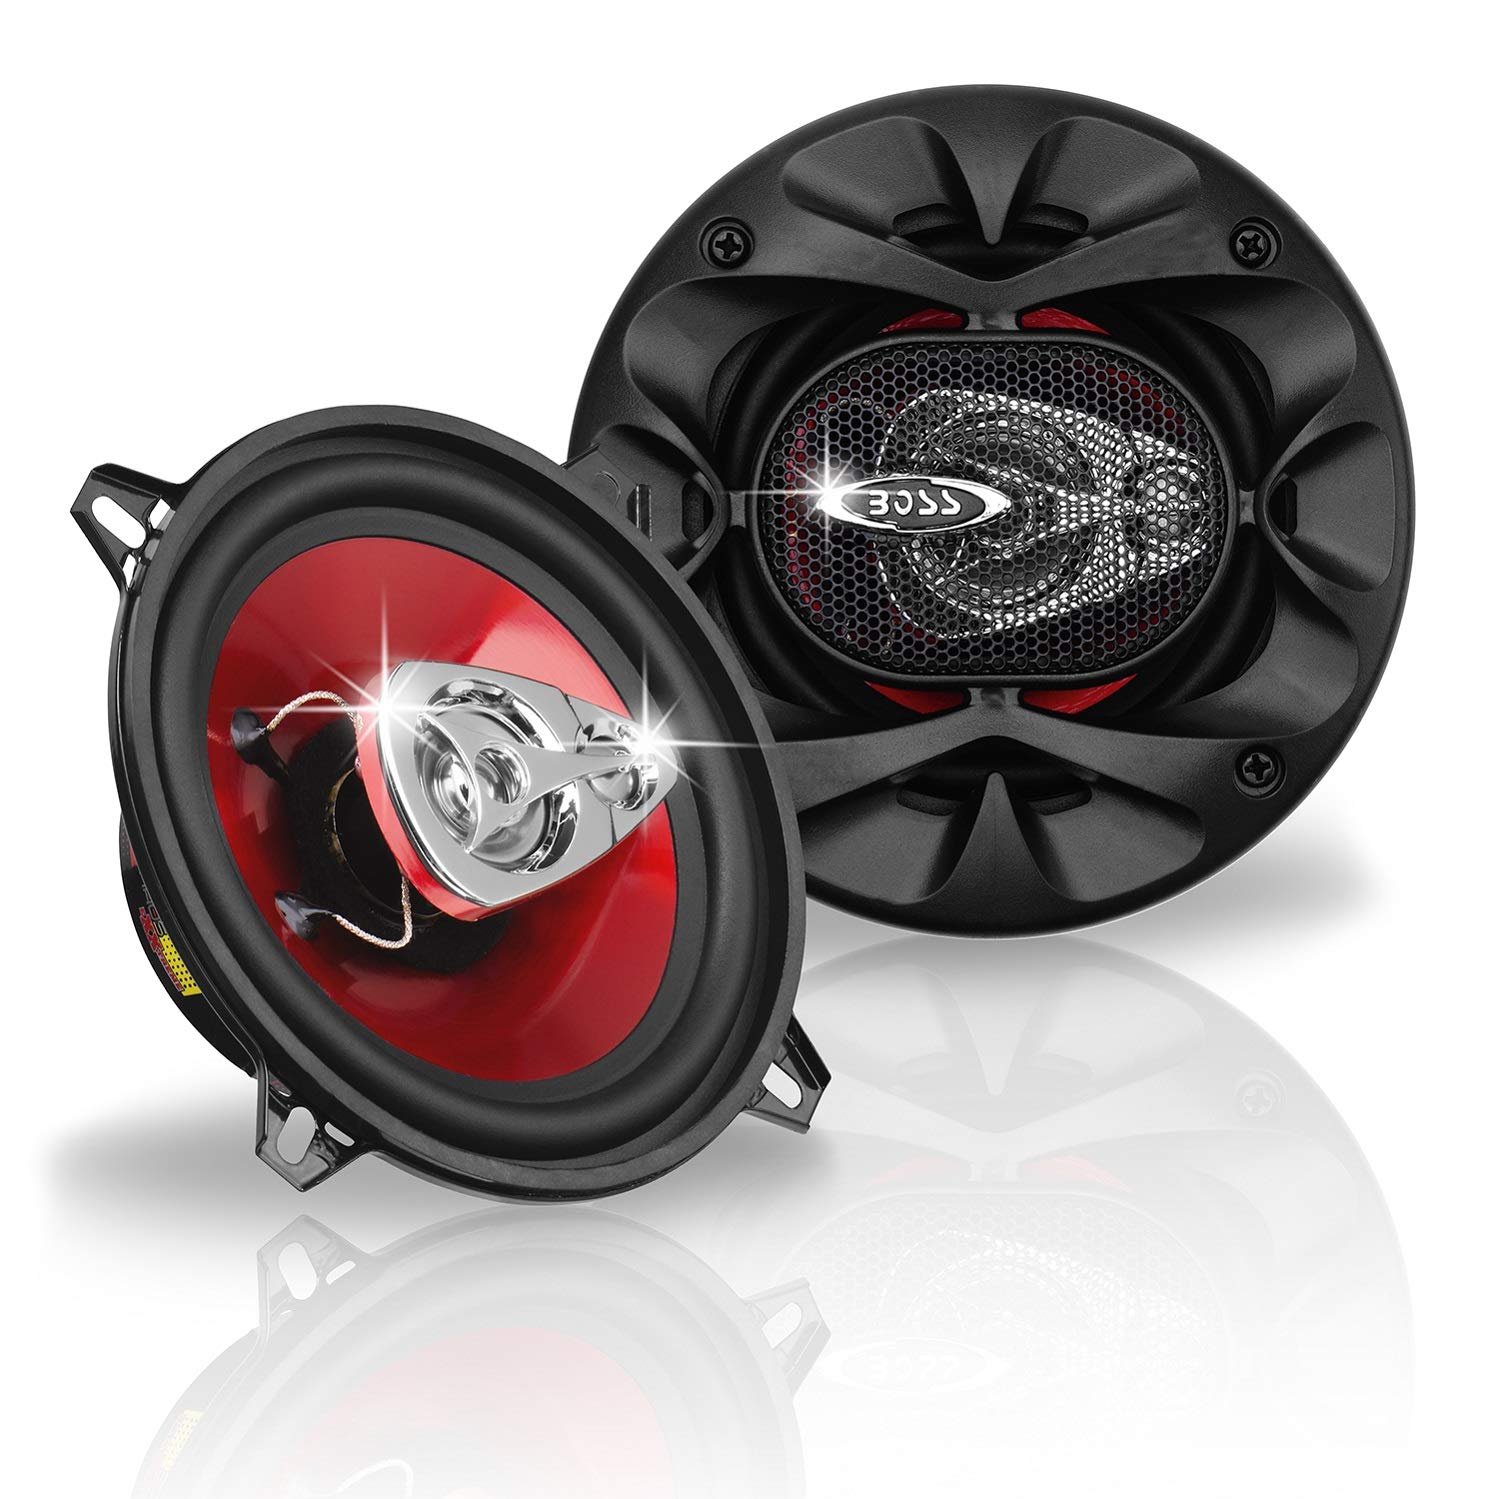 BOSS Audio Systems CH5530 Car Speakers - 225 Watts of Power Per Pair and 112.5 Watts Each, 5.25 Inch, Full Range, 3 Way, Sold in Pairs, Easy Mounting